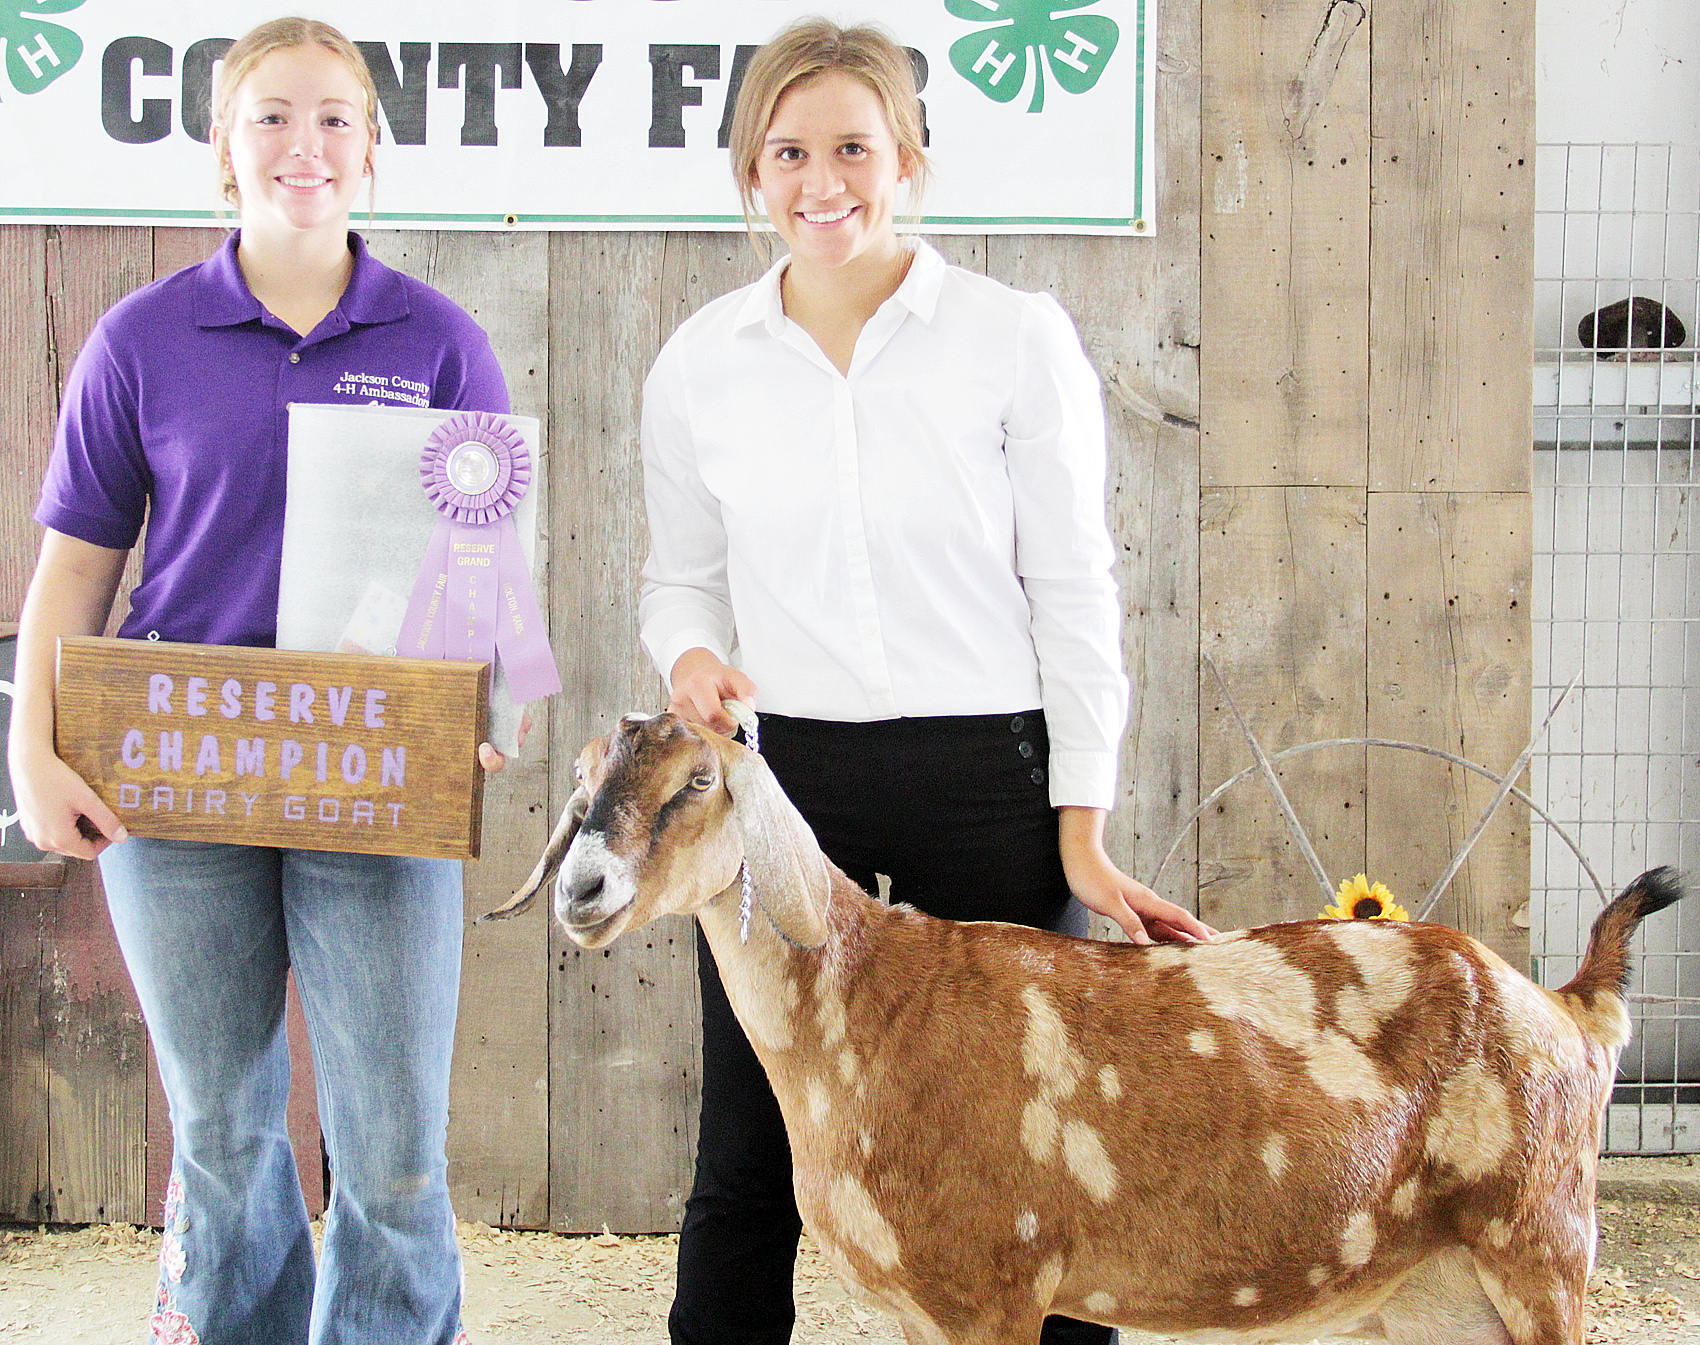 MaKenzie Kennedy of the Soldier Boosters 4-H Club showed the reserve grand champion overall dairy goat at the 2020 Jackson County Fair.